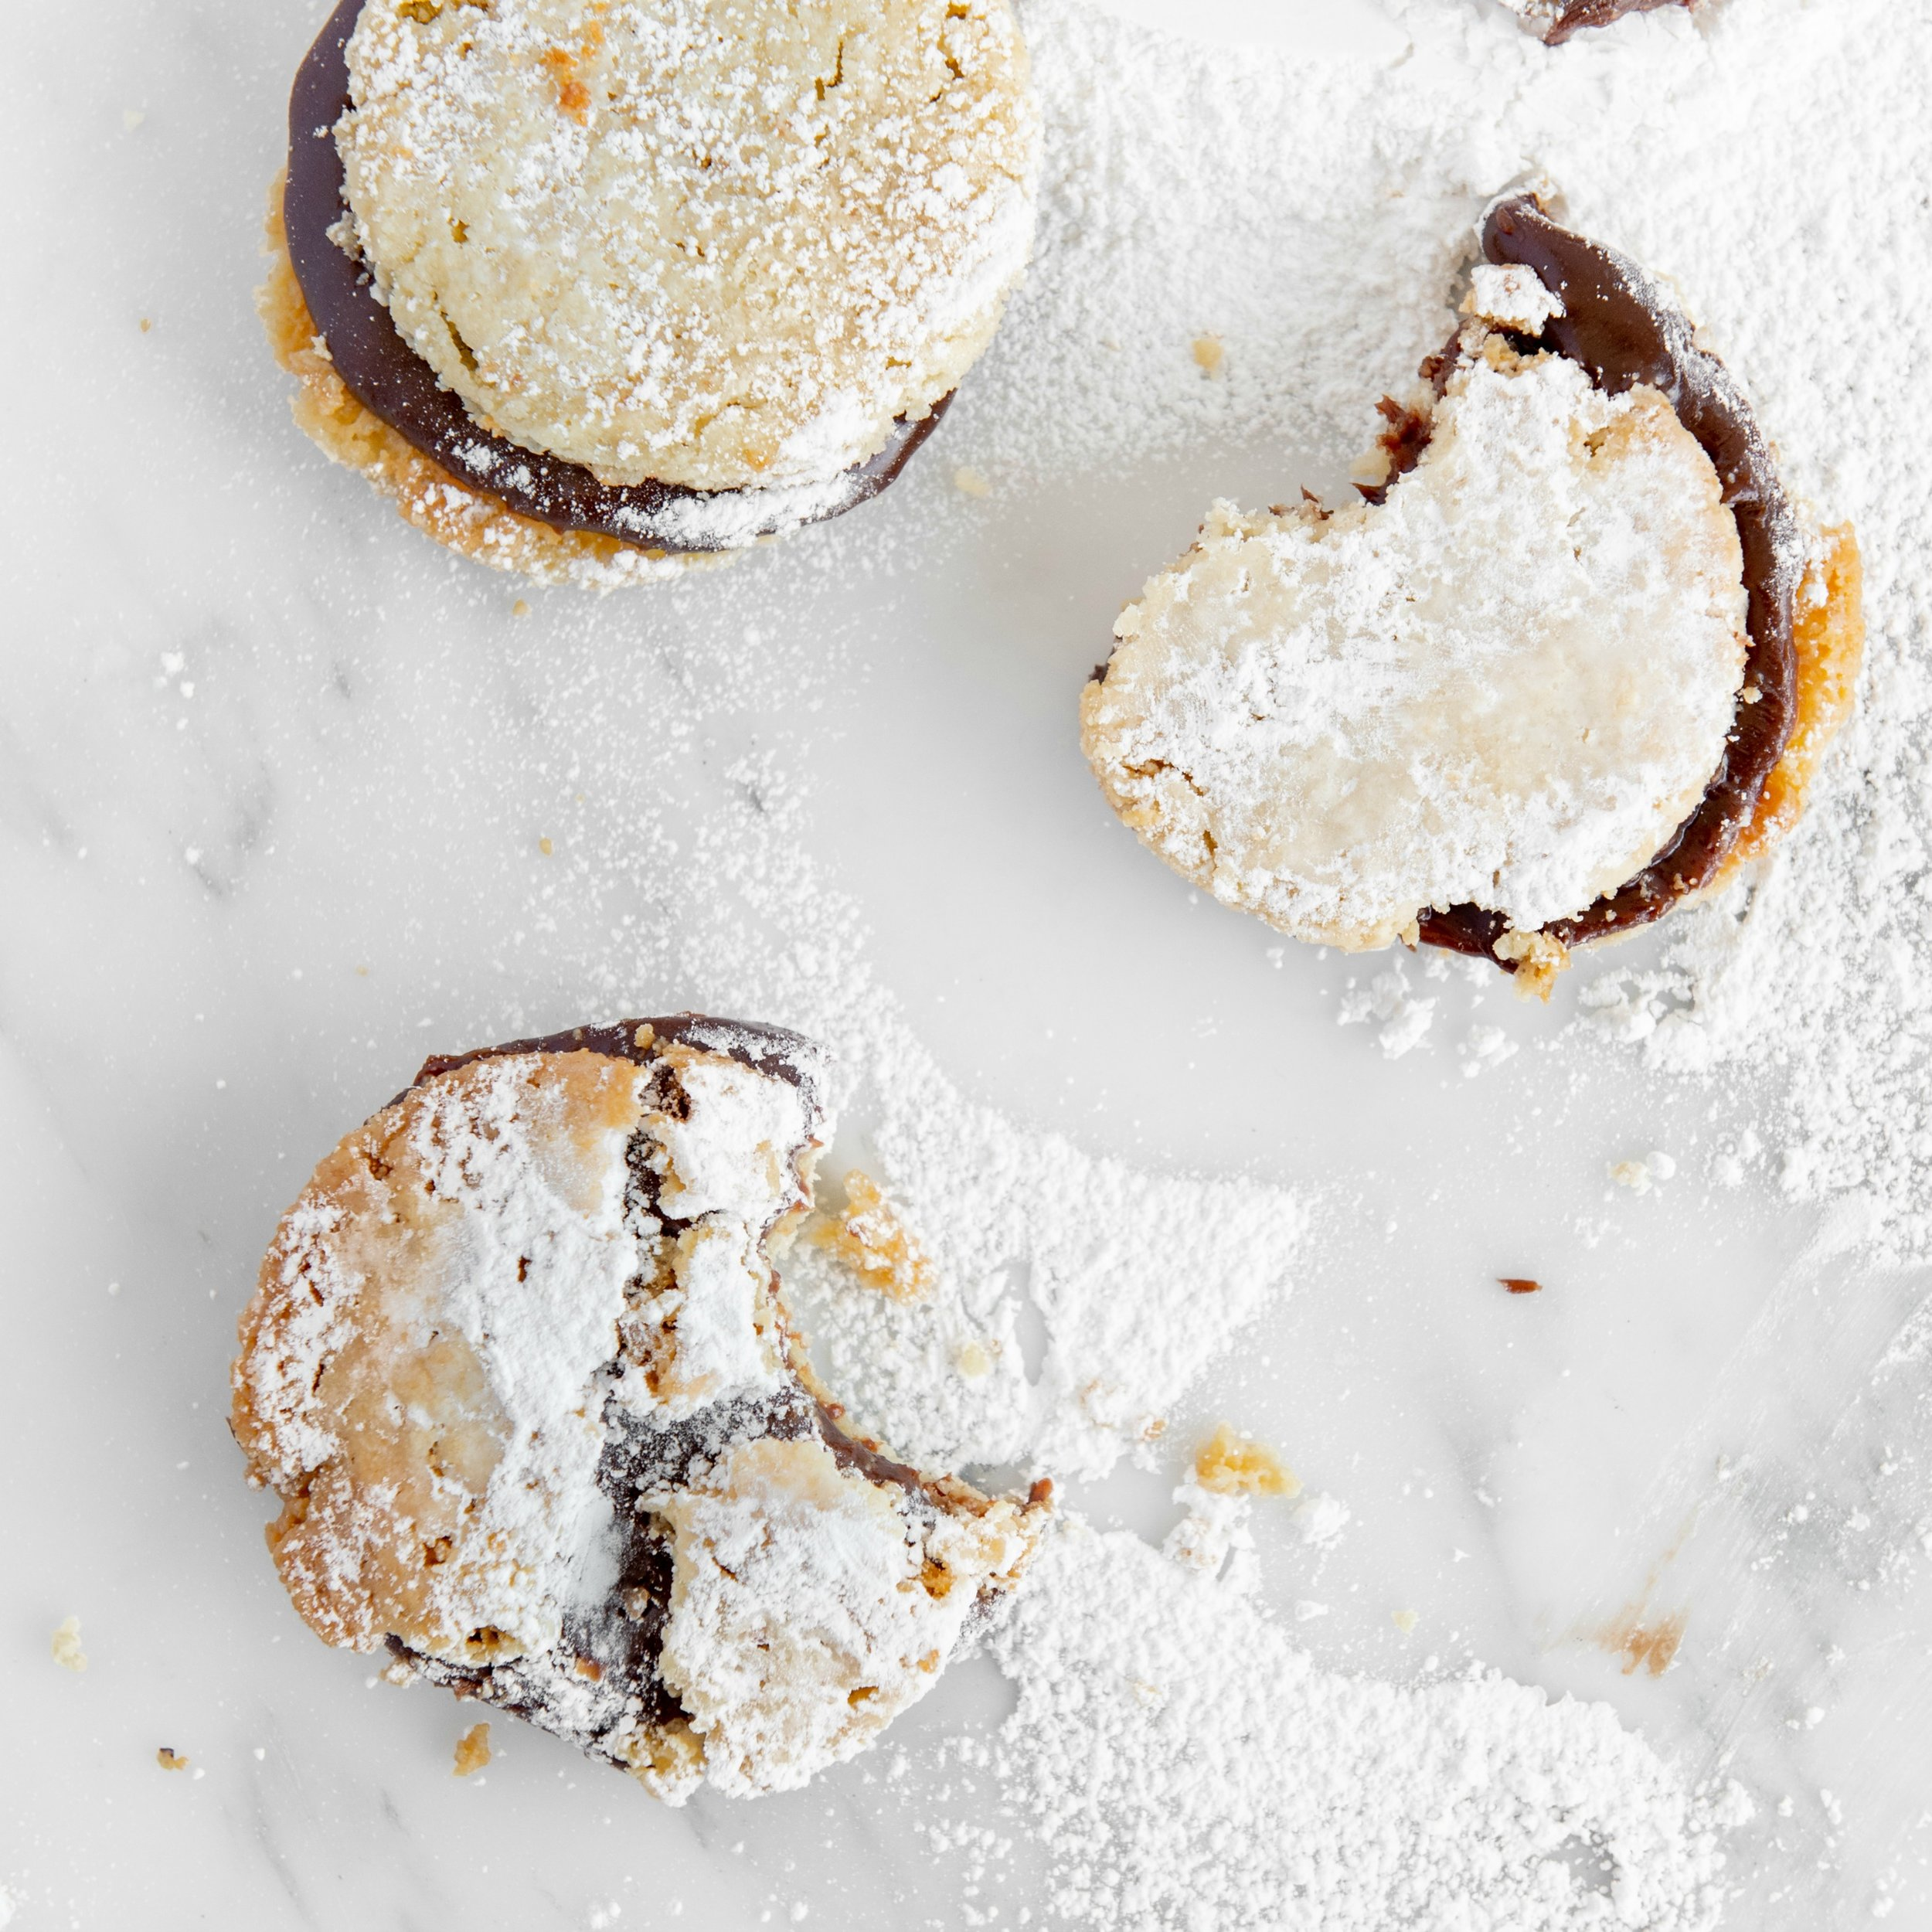 Shortbread Brigwiches - Melt-in-your-Mouth Gluten-Free Masa Shortbread Cookies with Delectable Chocolate Brig Middles